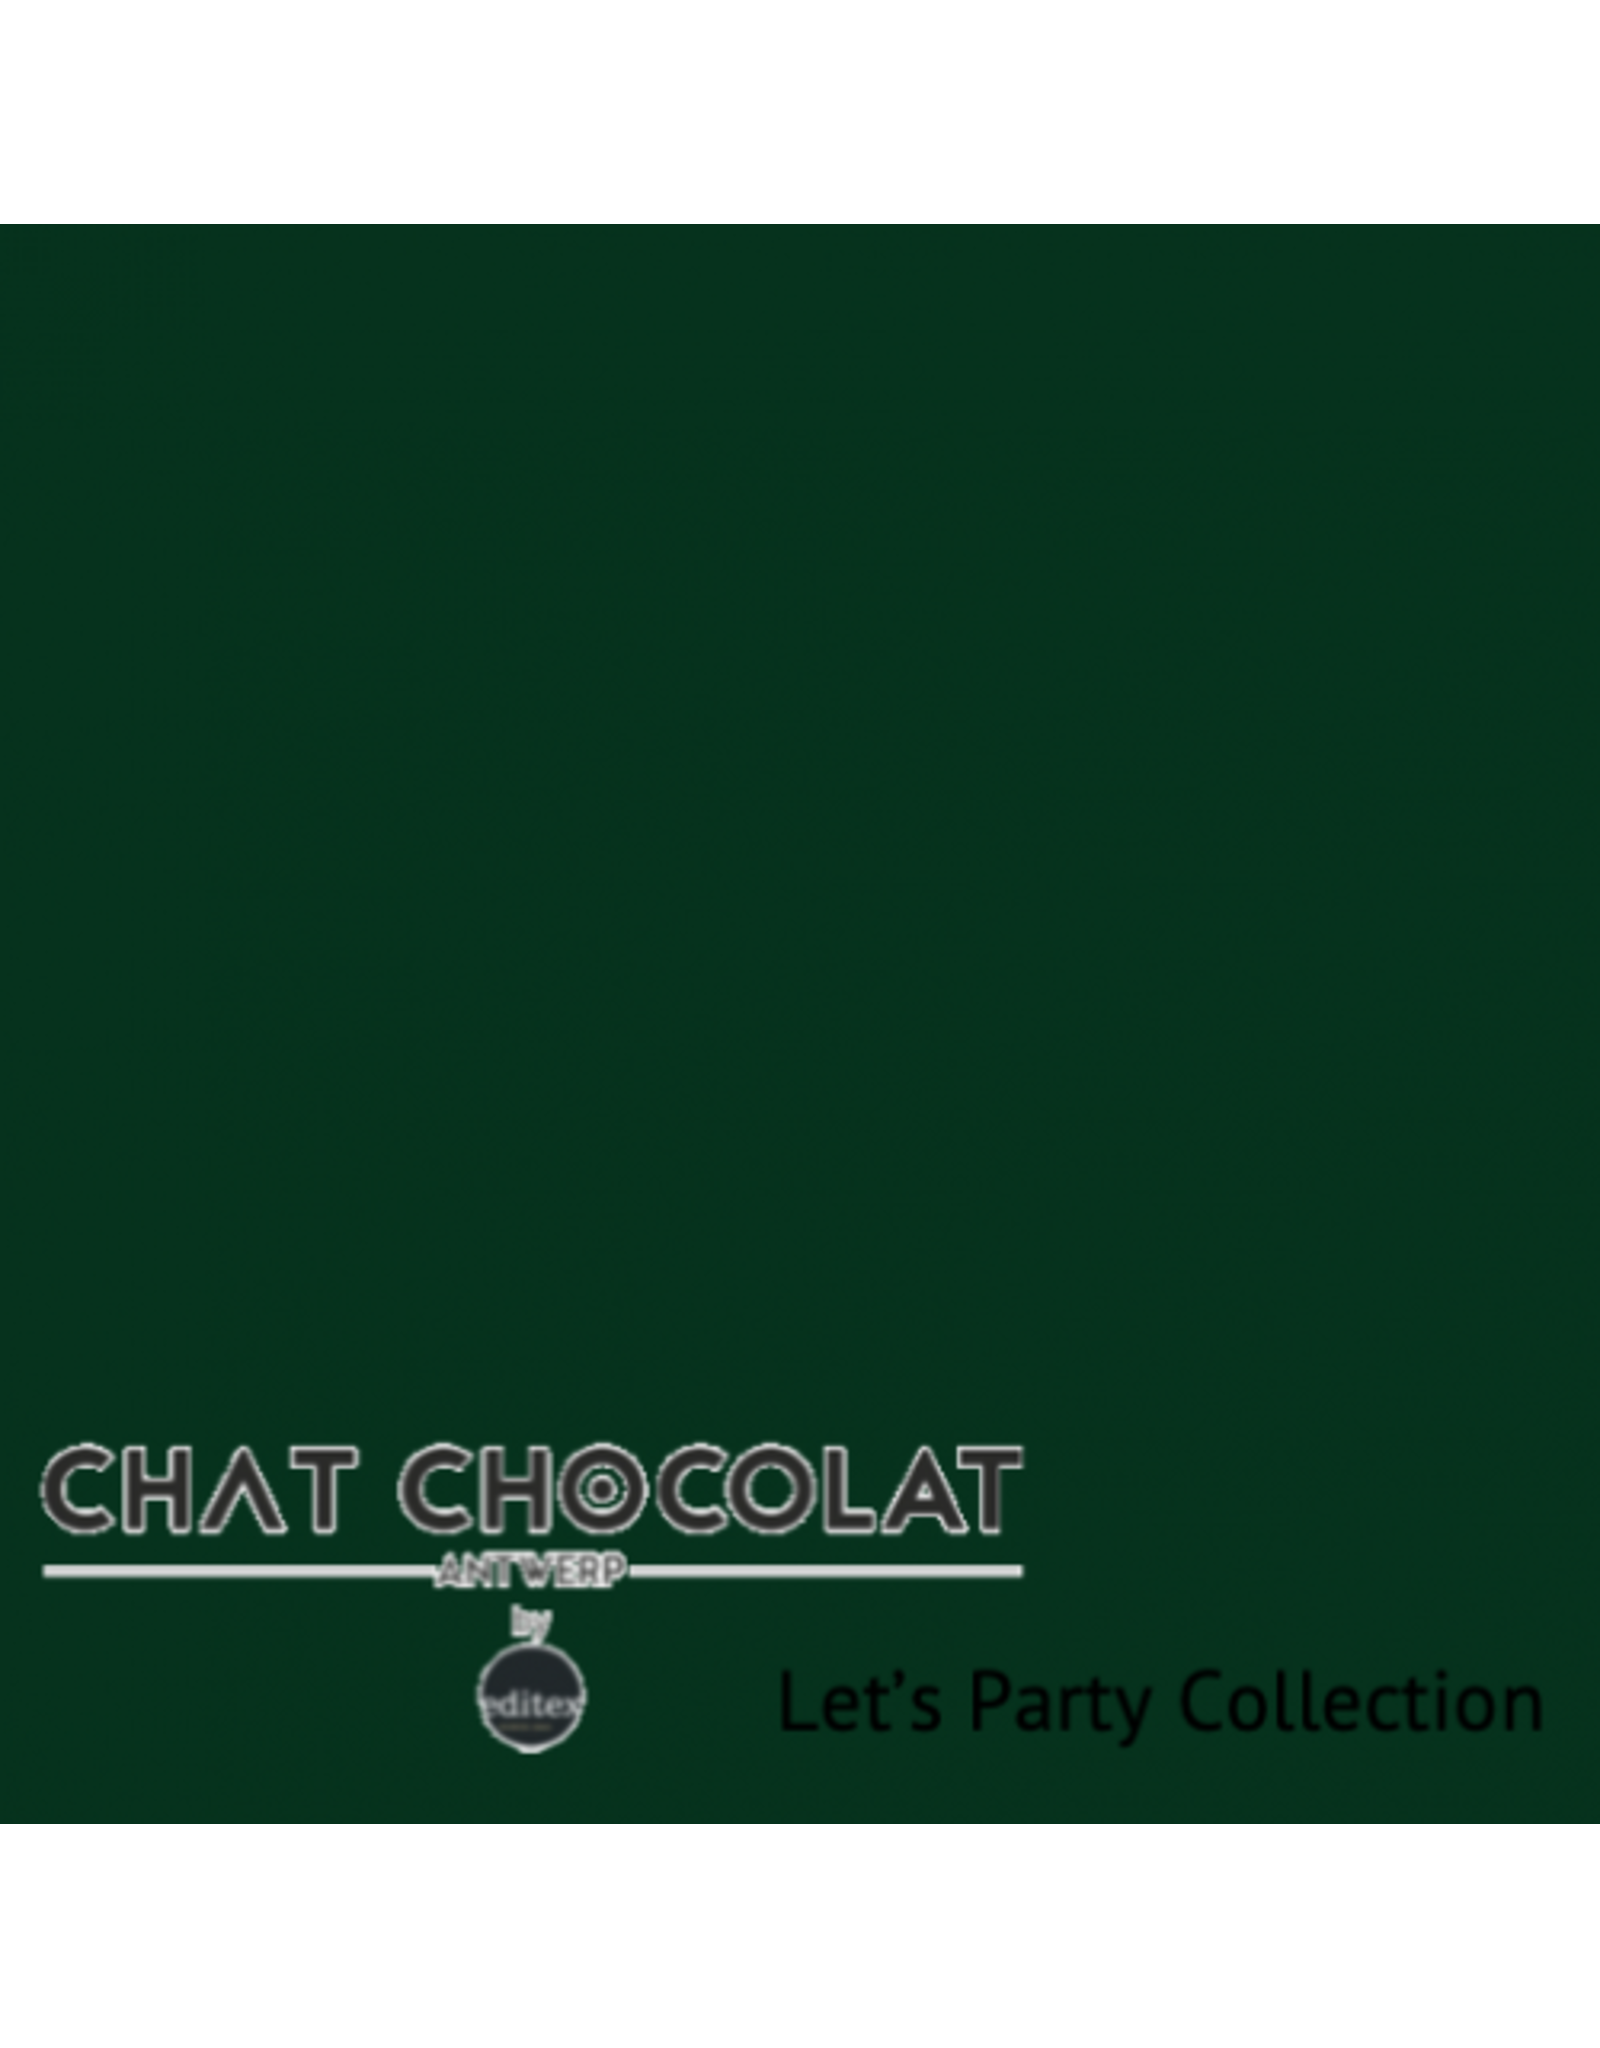 Chat Chocolat Uni viscose let's party dark green